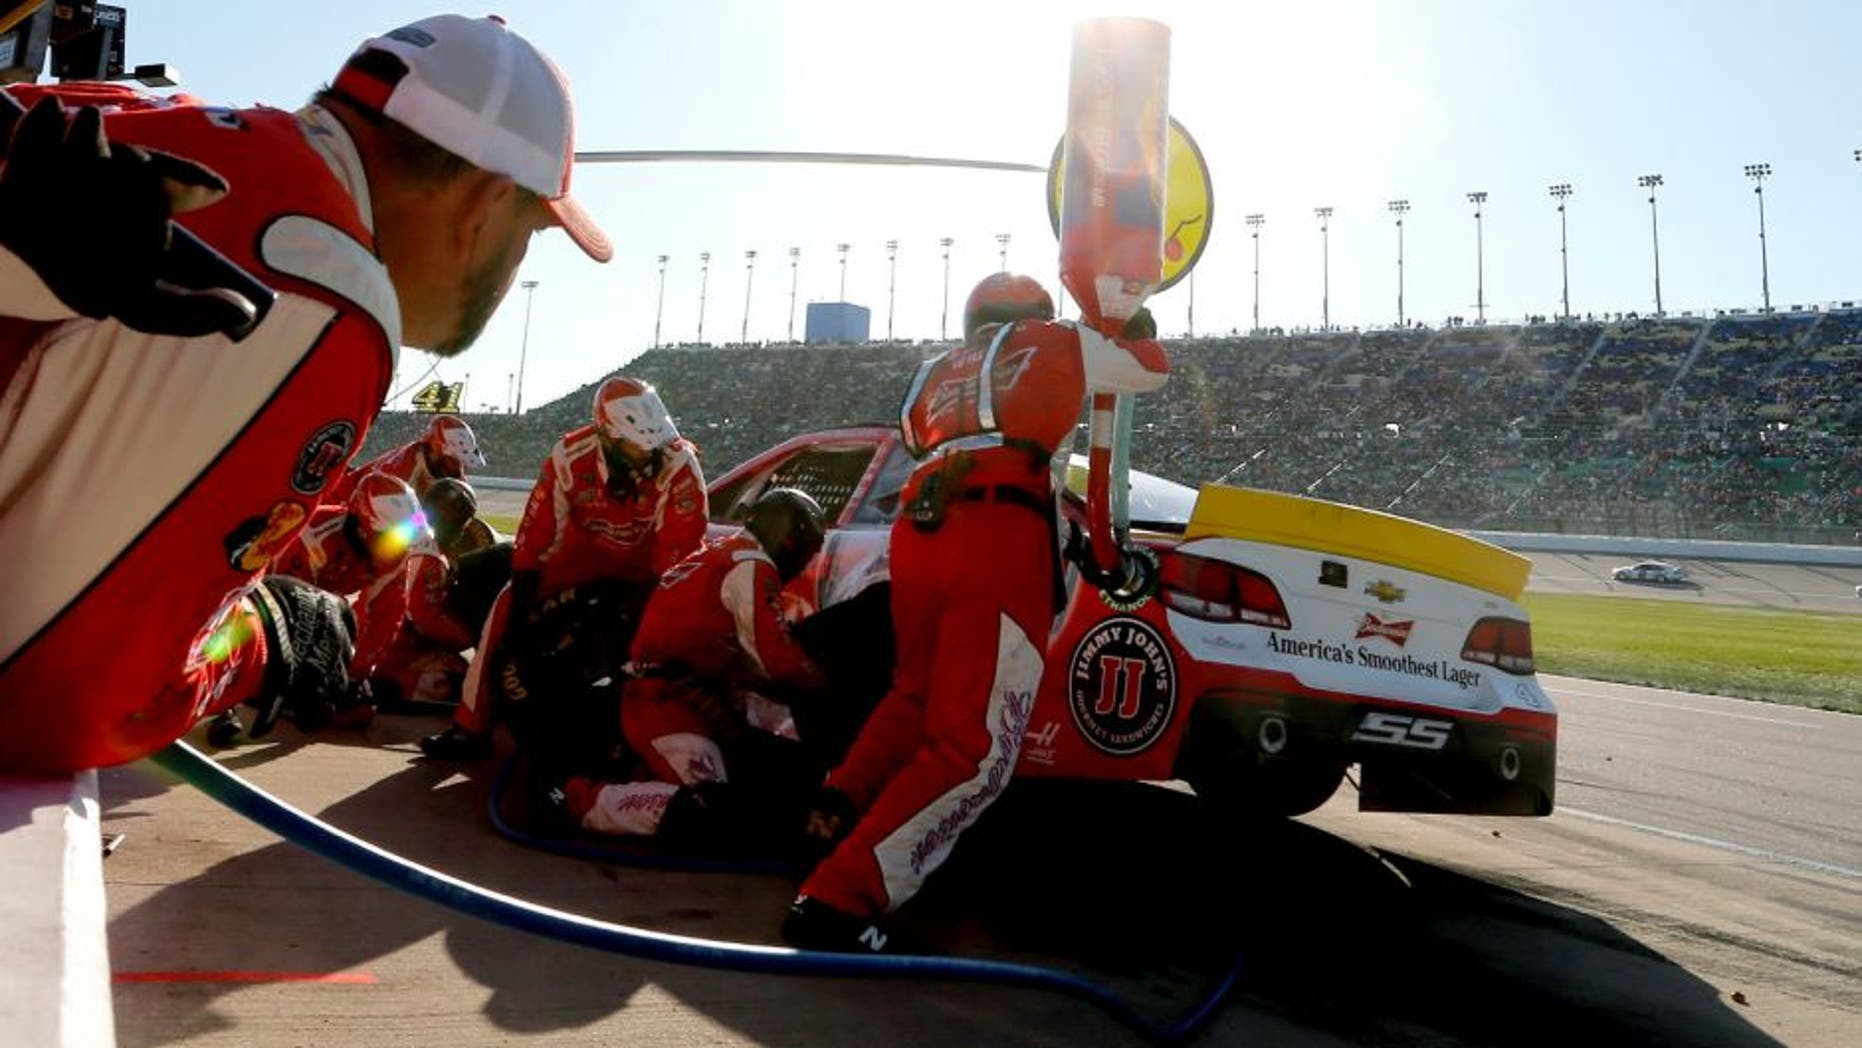 KANSAS CITY, KS - OCTOBER 18: Kevin Harvick, driver of the #4 Budweiser/Jimmy John's Chevrolet, pits during the NASCAR Sprint Cup Series Hollywood Casino 400 at Kansas Speedway on October 18, 2015 in Kansas City, Kansas. (Photo by Brian Lawdermilk/NASCAR via Getty Images)